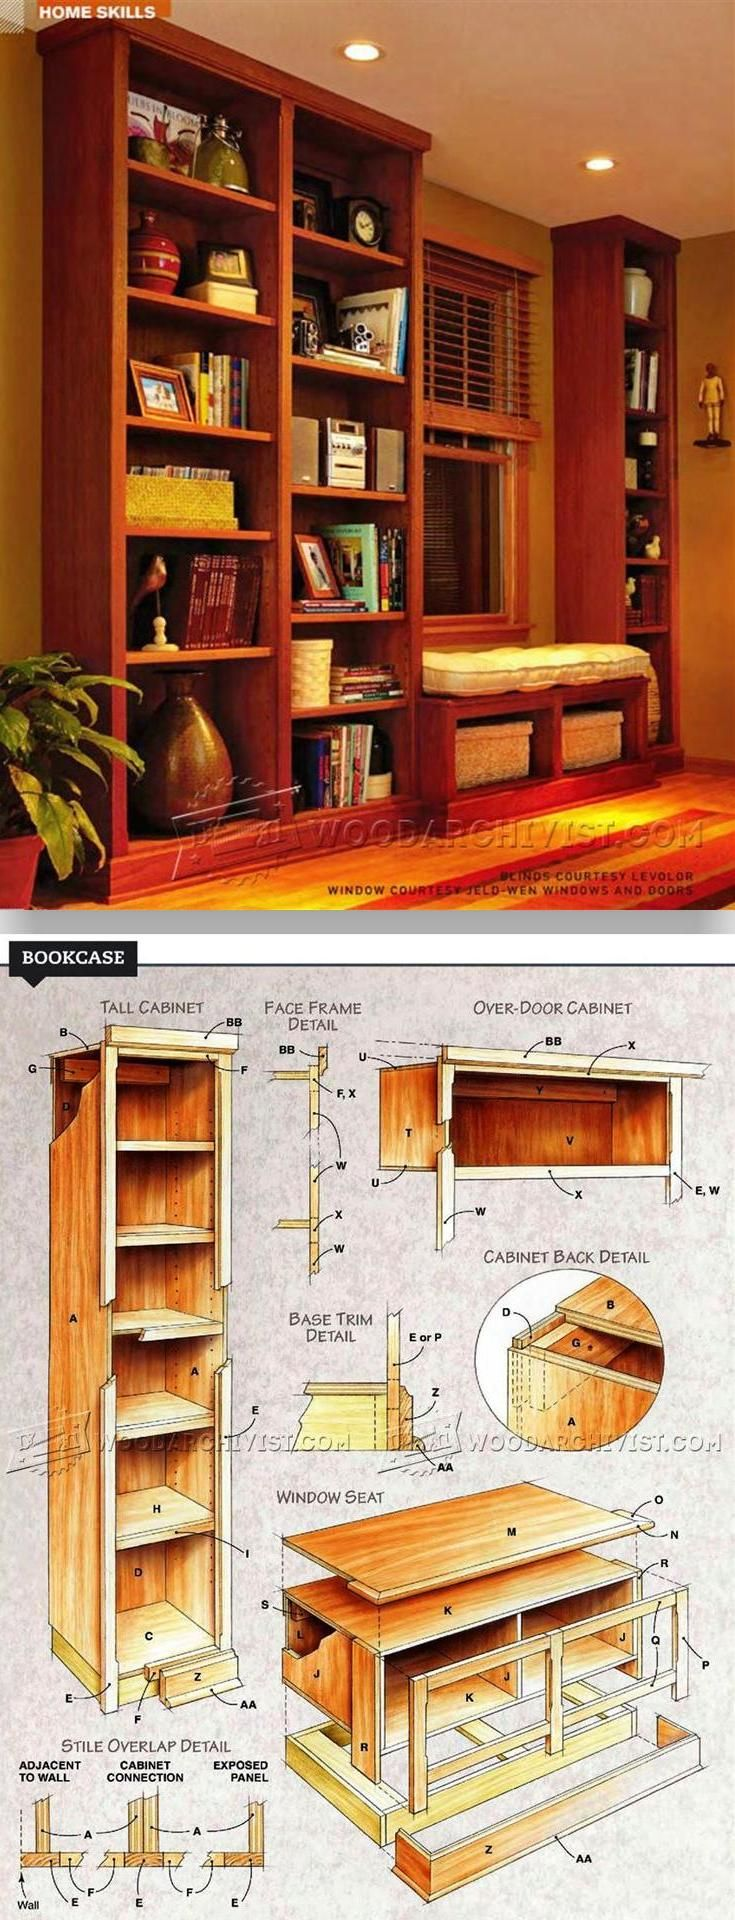 Built In Bookcase Plans Furniture Plans And Projects Woodarchivist Com Woodworking Furniture Plans Bookcase Plans Woodworking Plans Diy